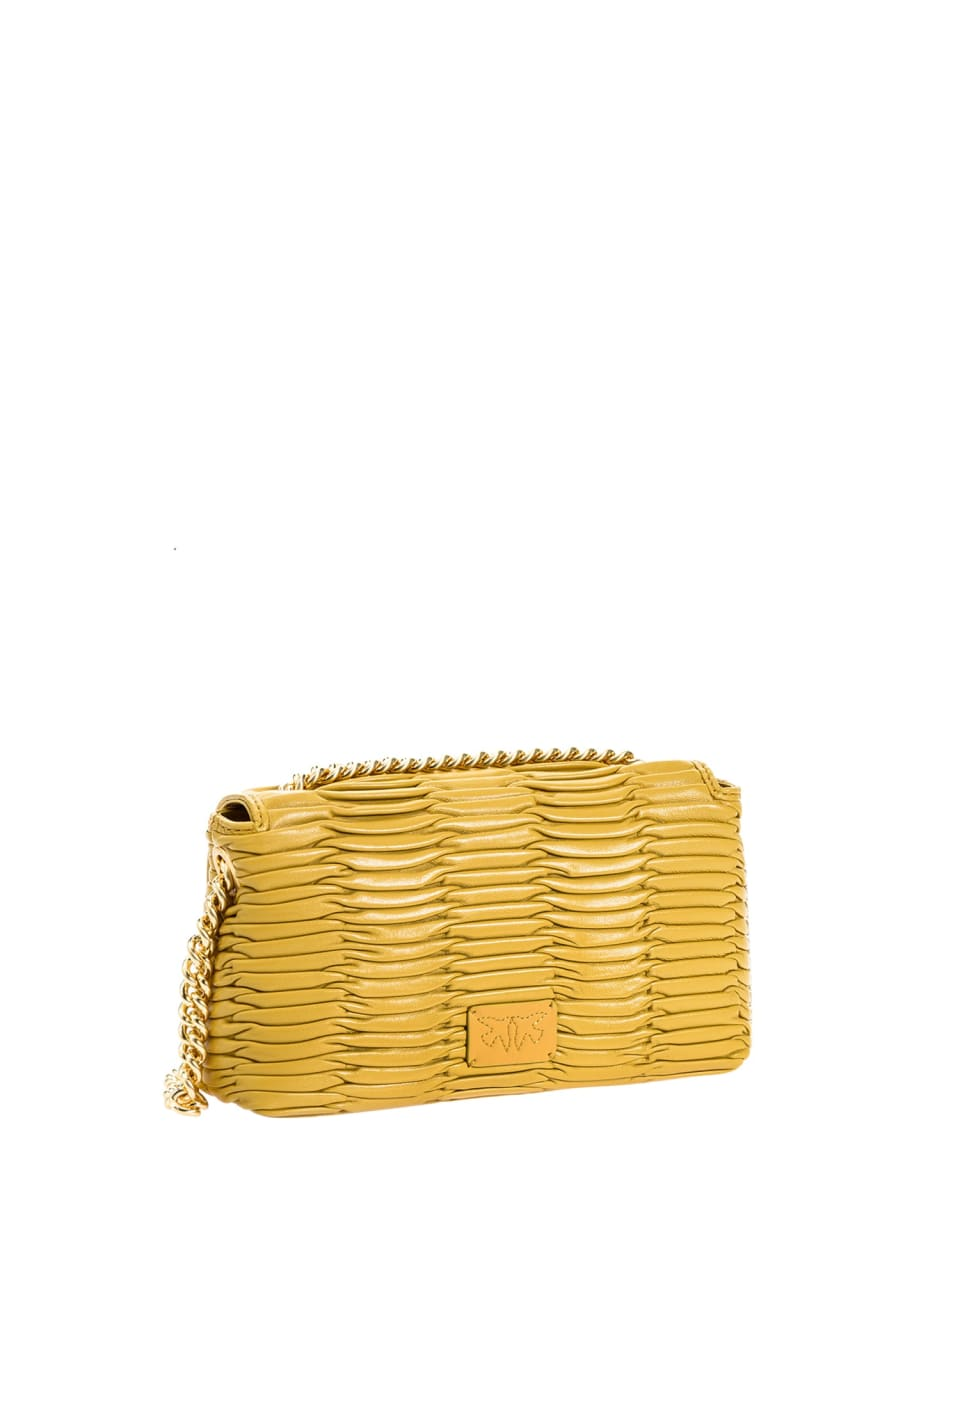 Mini Love Bag Puff Banana in origami-effect nappa leather - Pinko